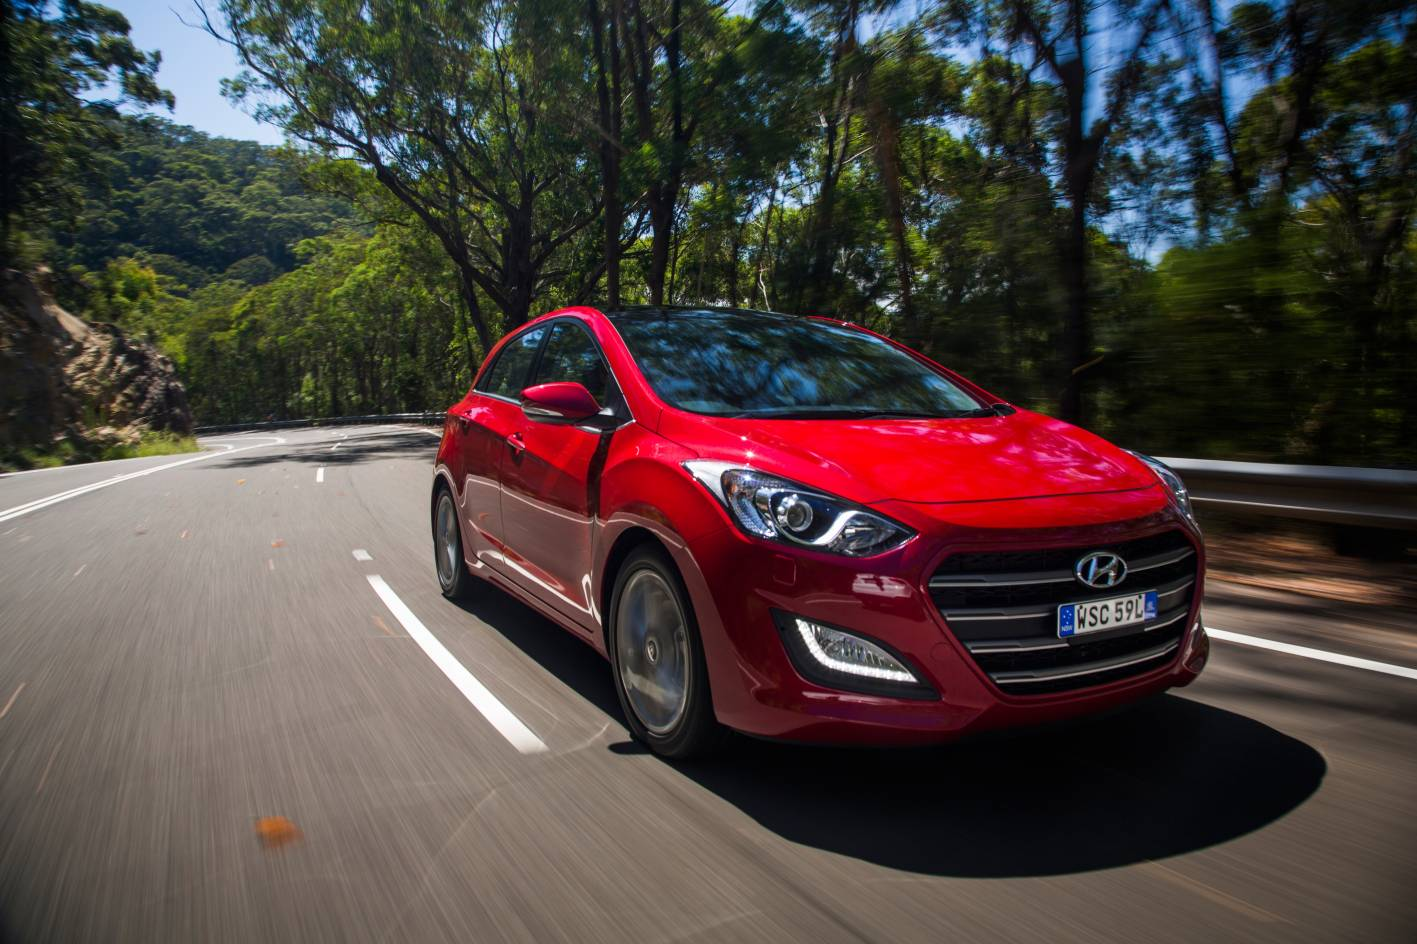 2015 hyundai i30 series ii pricing and details released